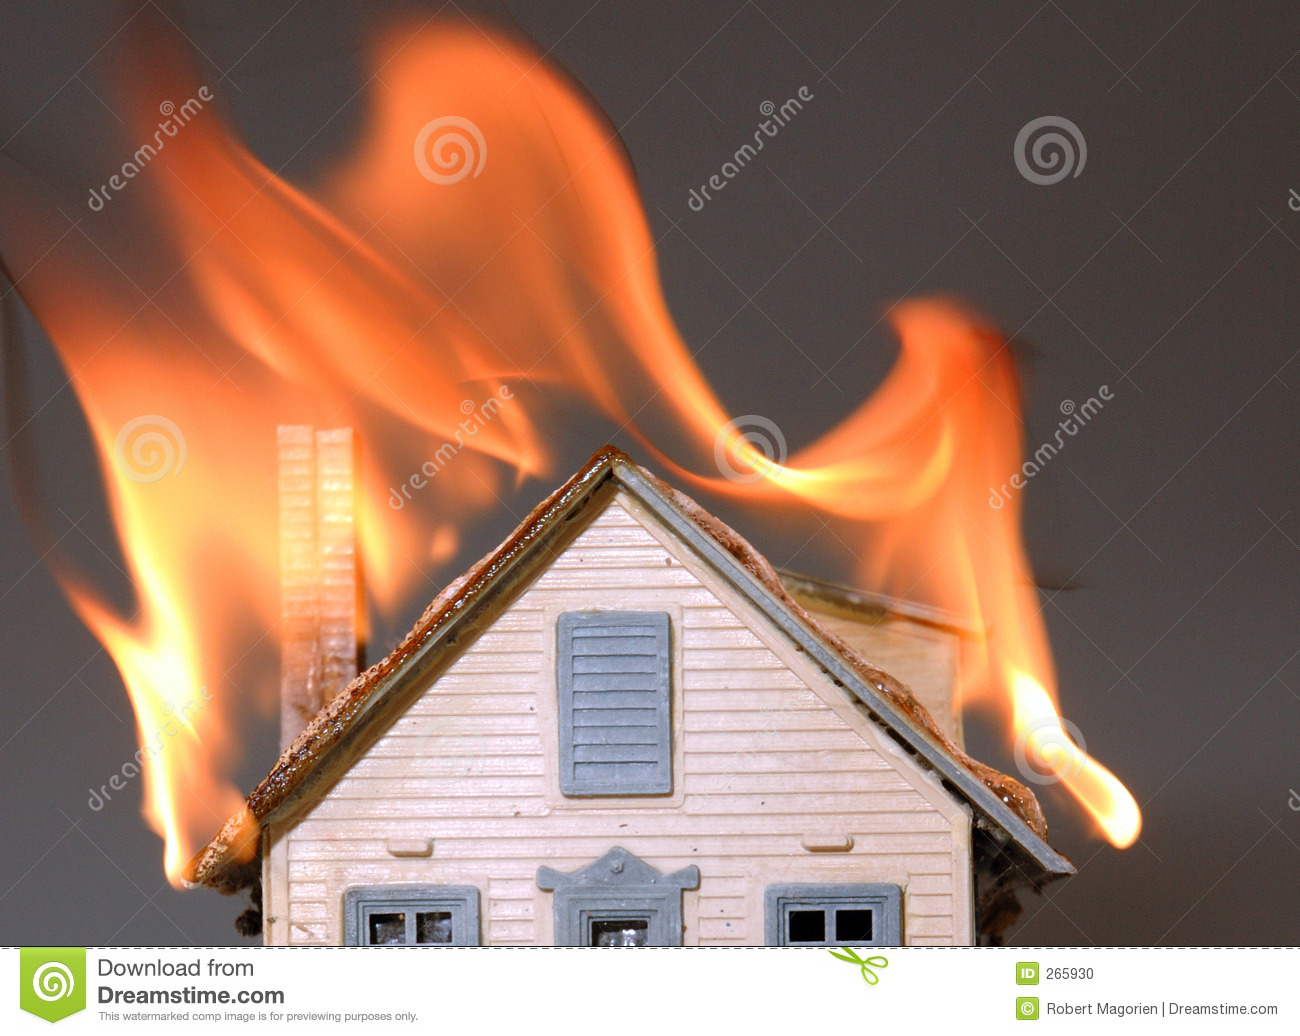 House on fire 2